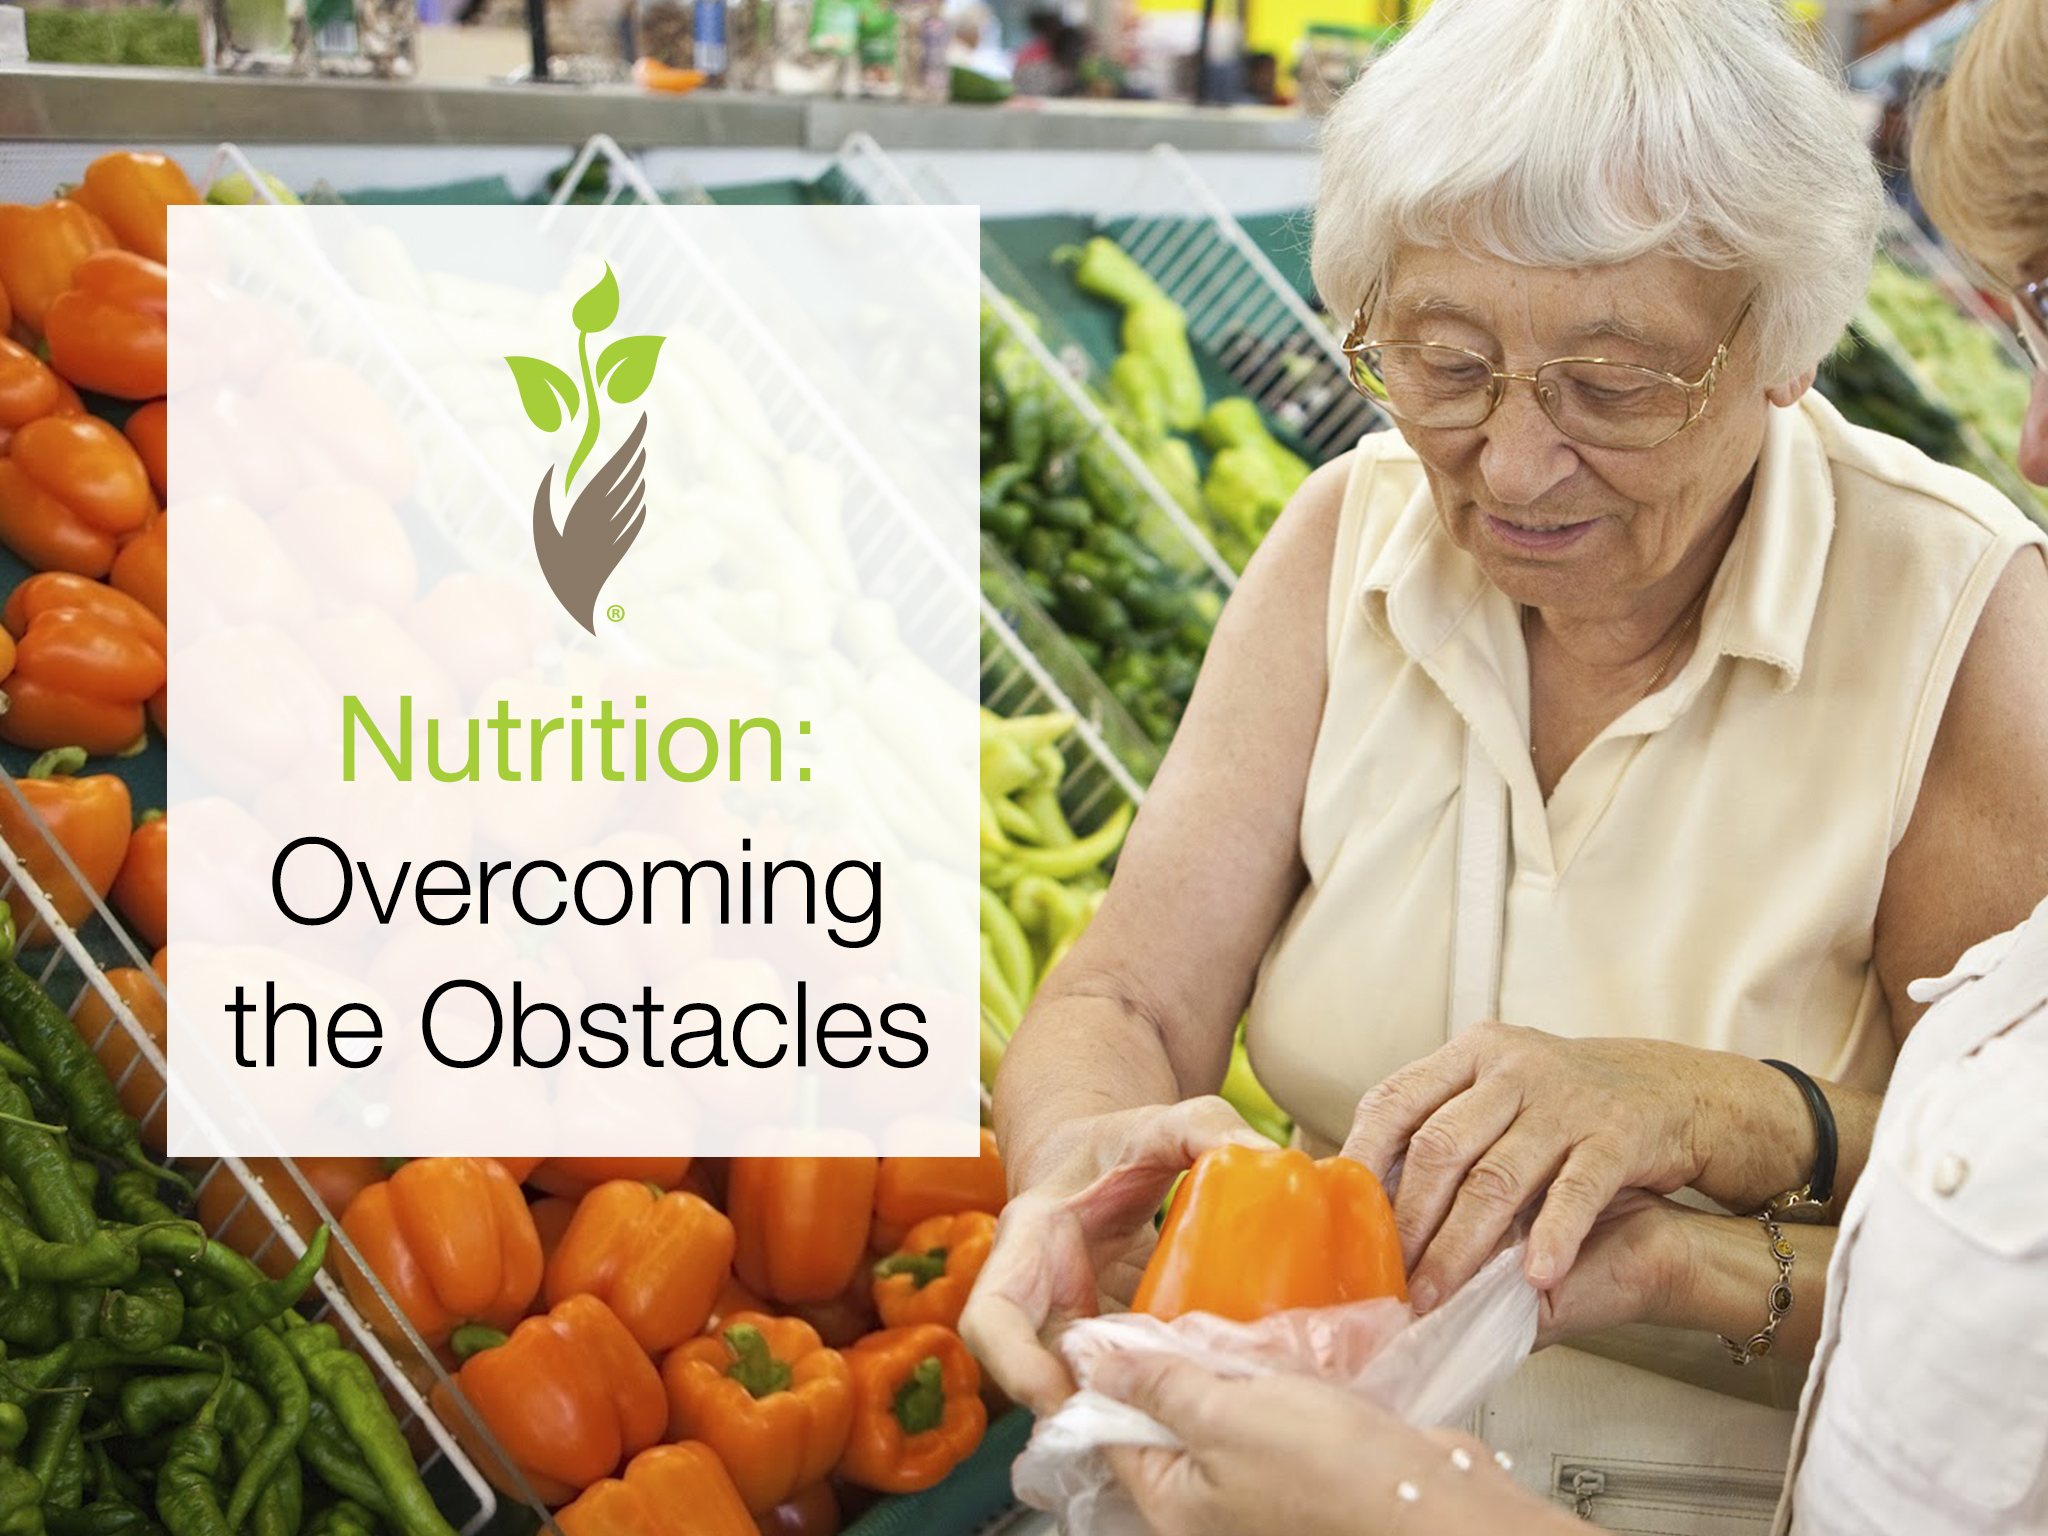 Nutrition: Overcoming the Obstacles